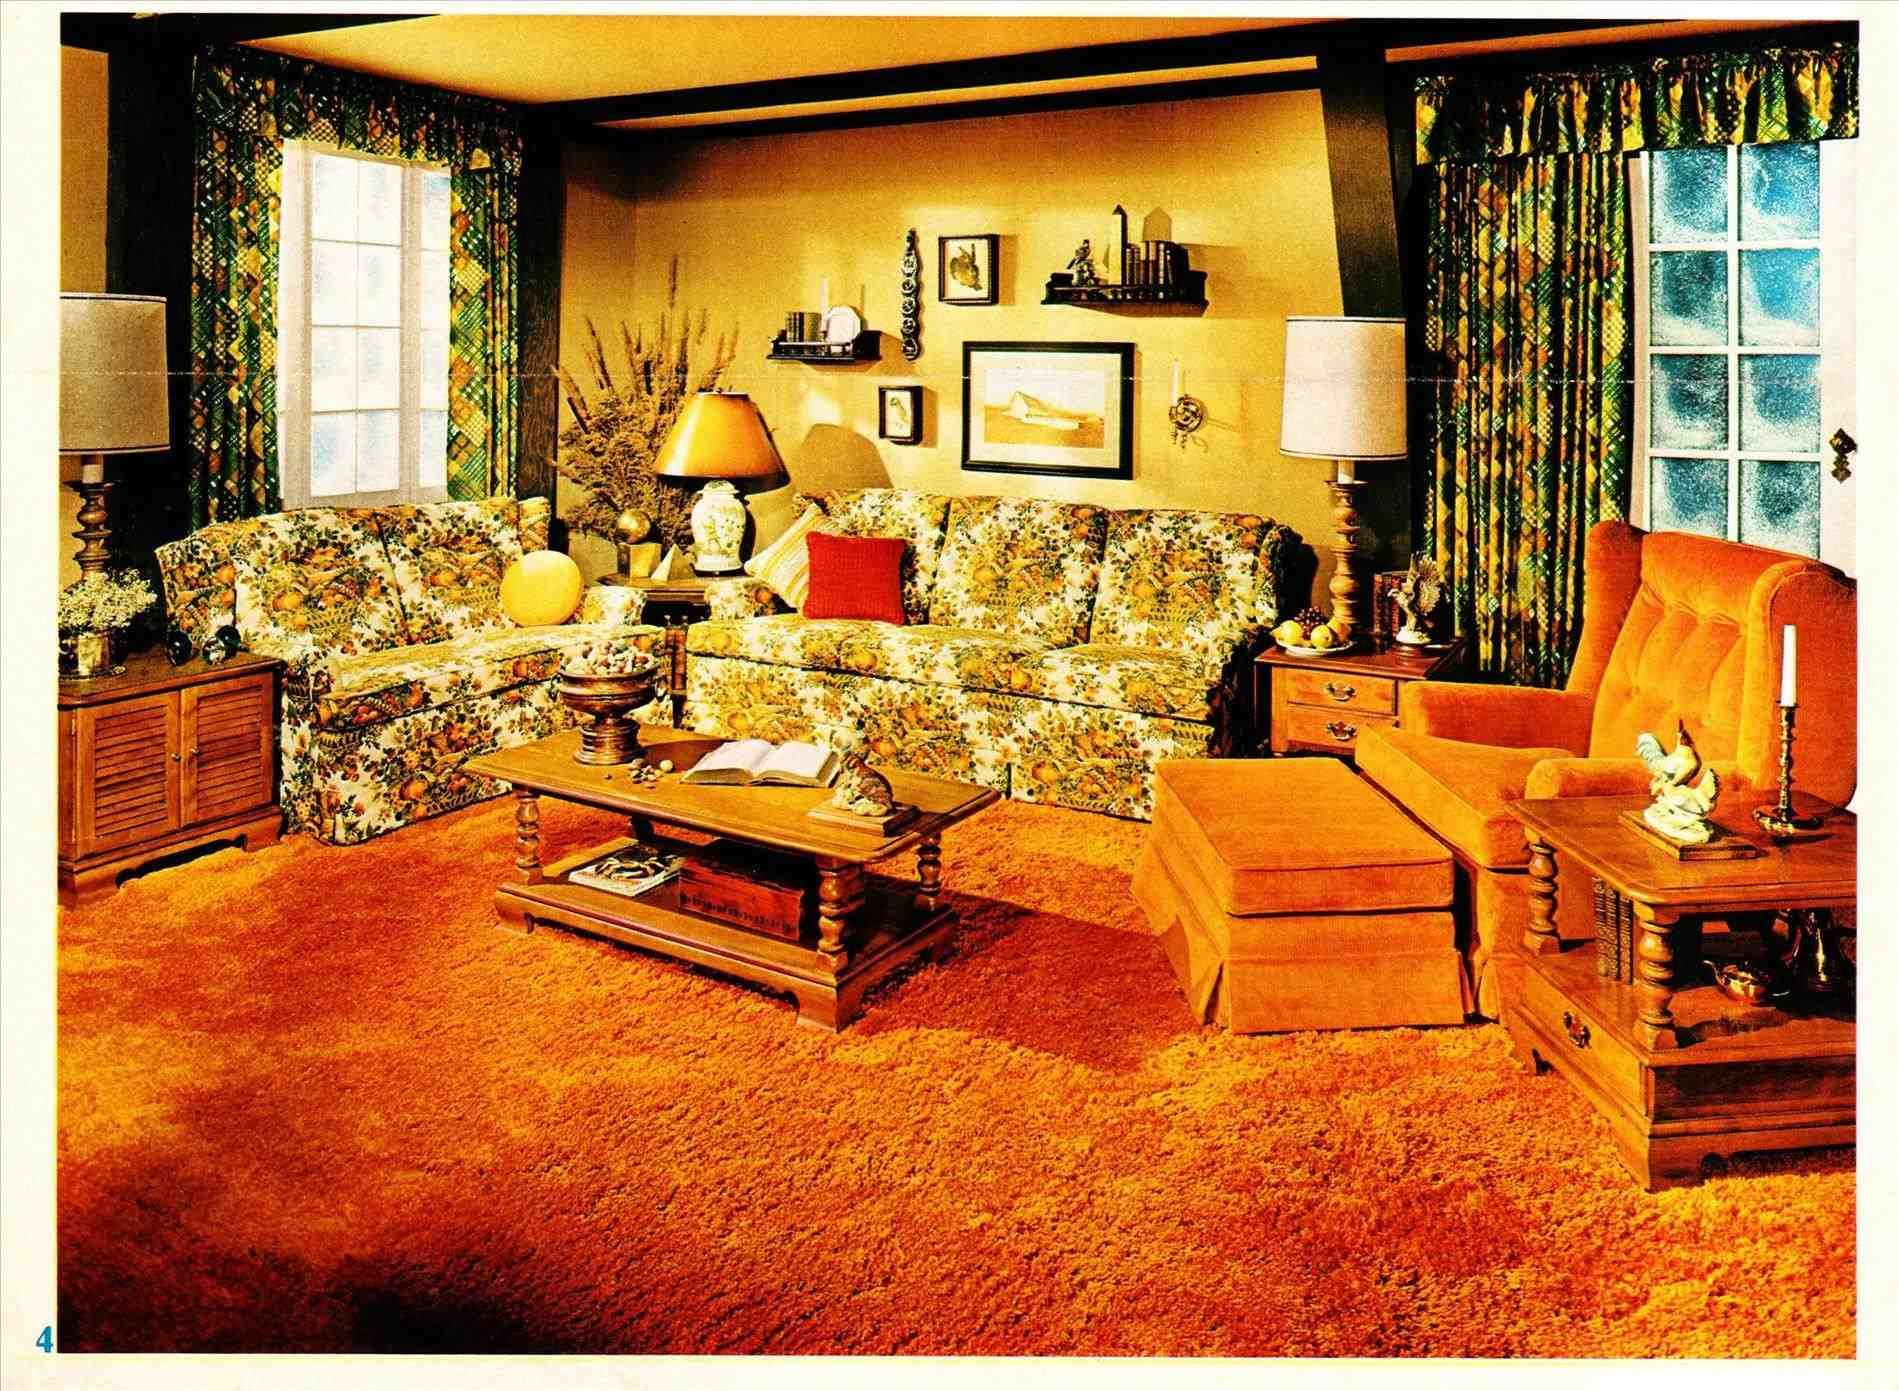 70s Living Room Decor With Images 70s Home Decor 70s Decor